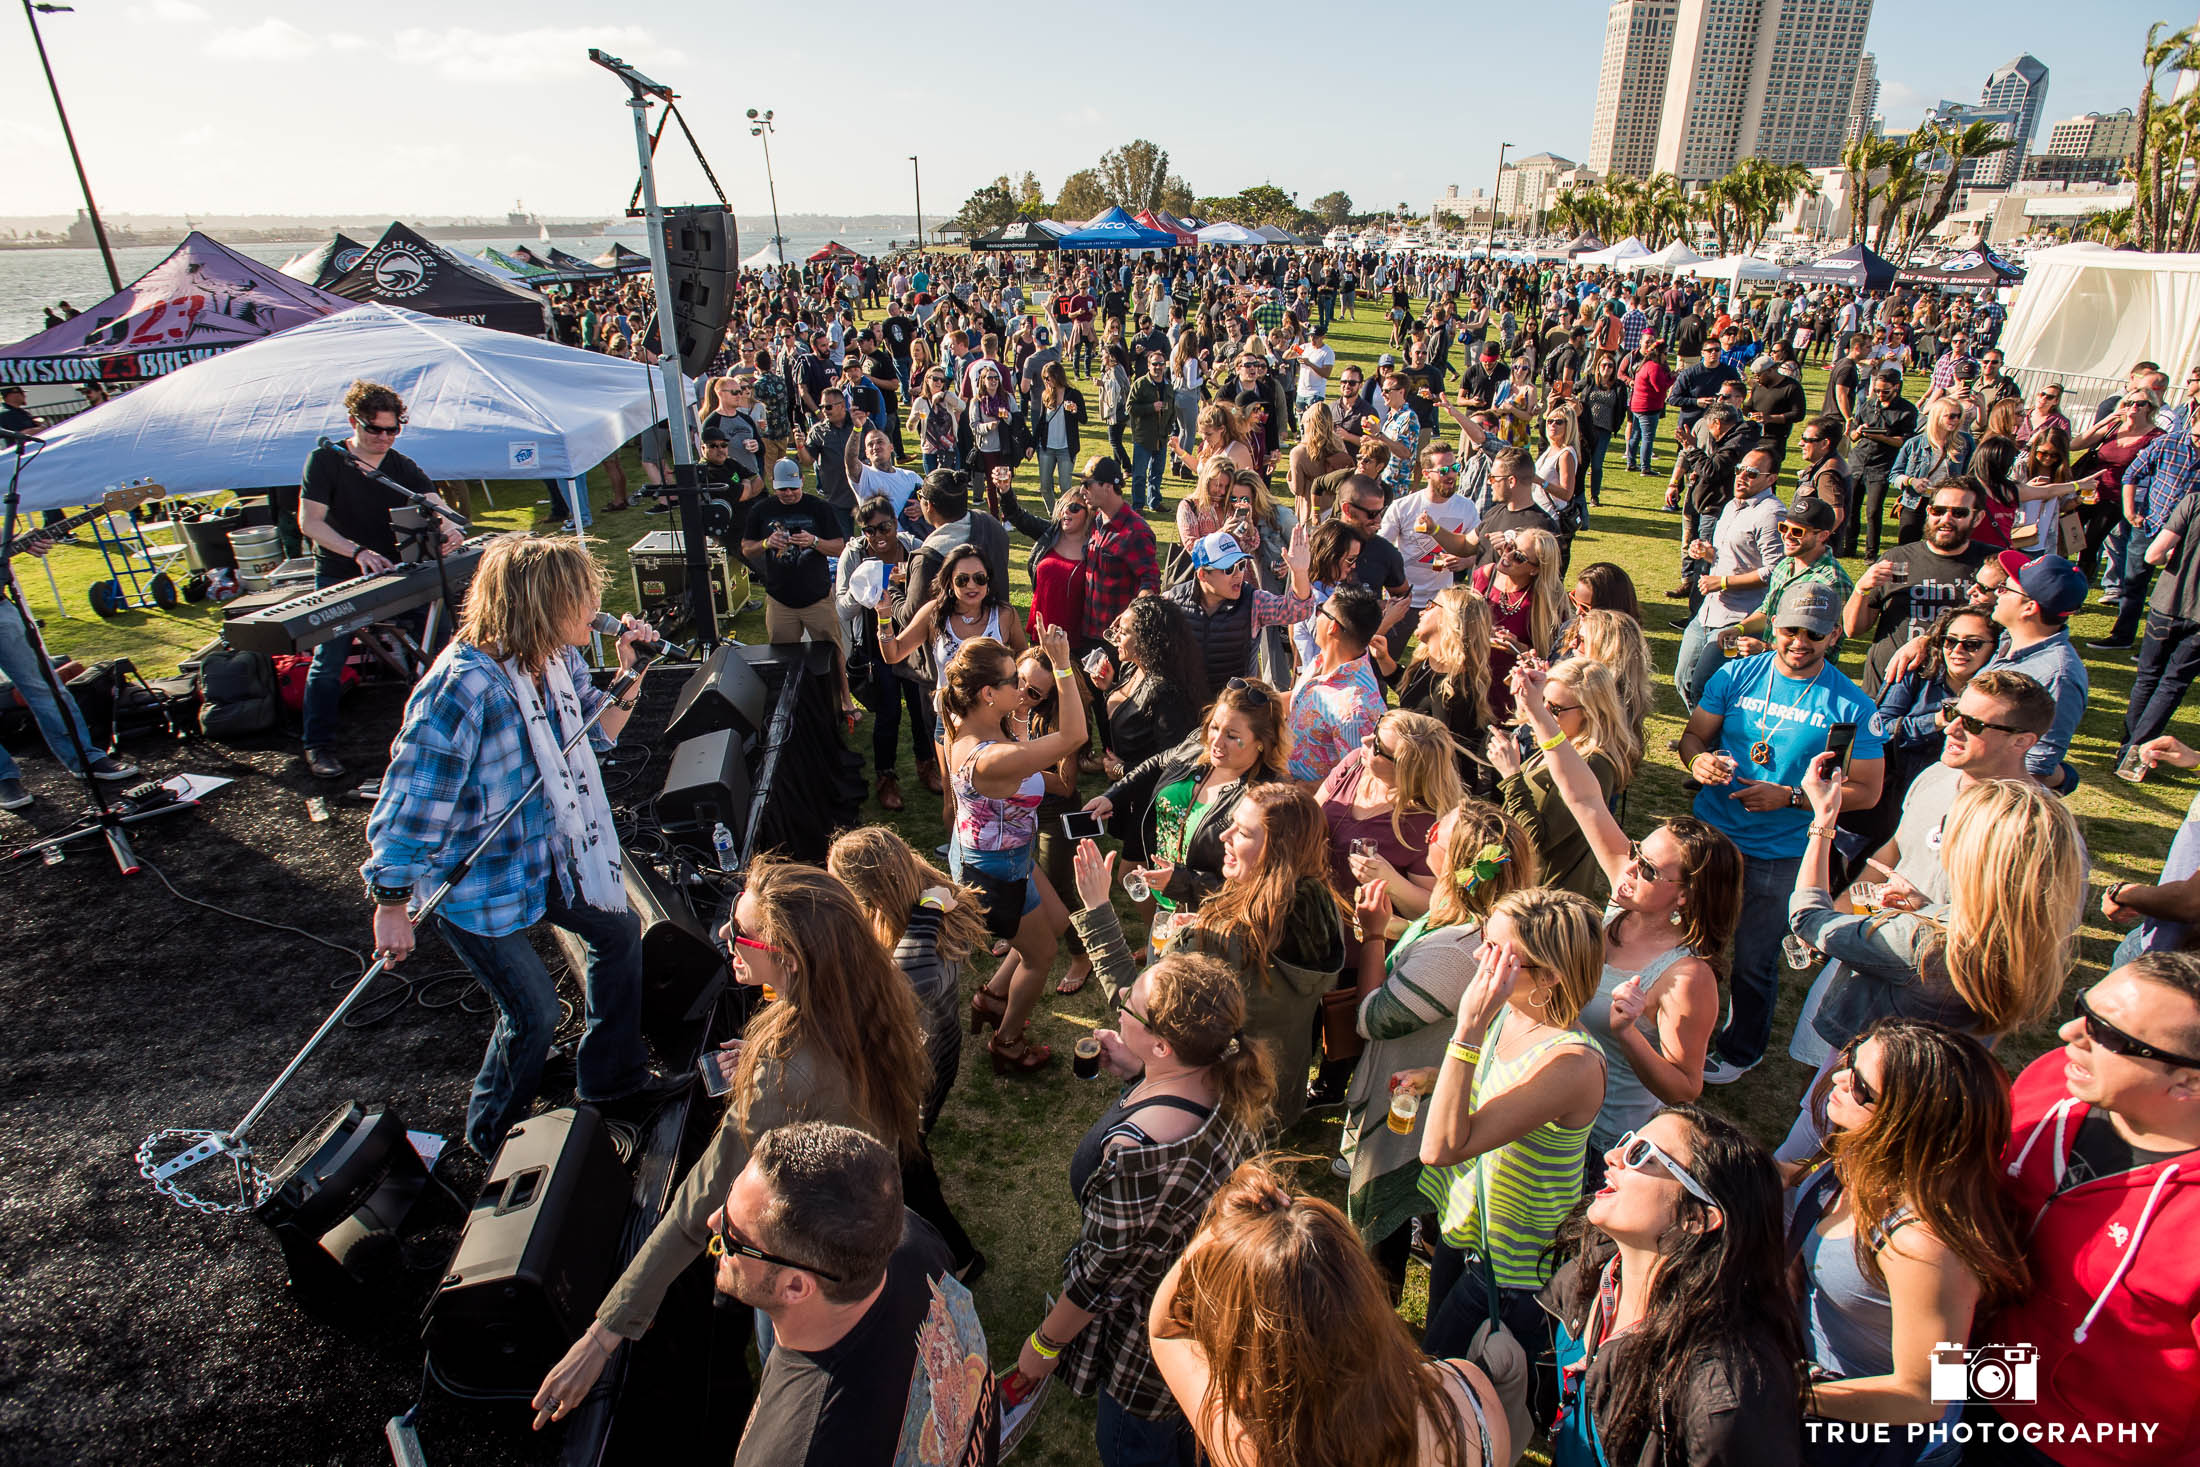 Live band performs for crowd on lawn of Embarcadero Park during beer festival